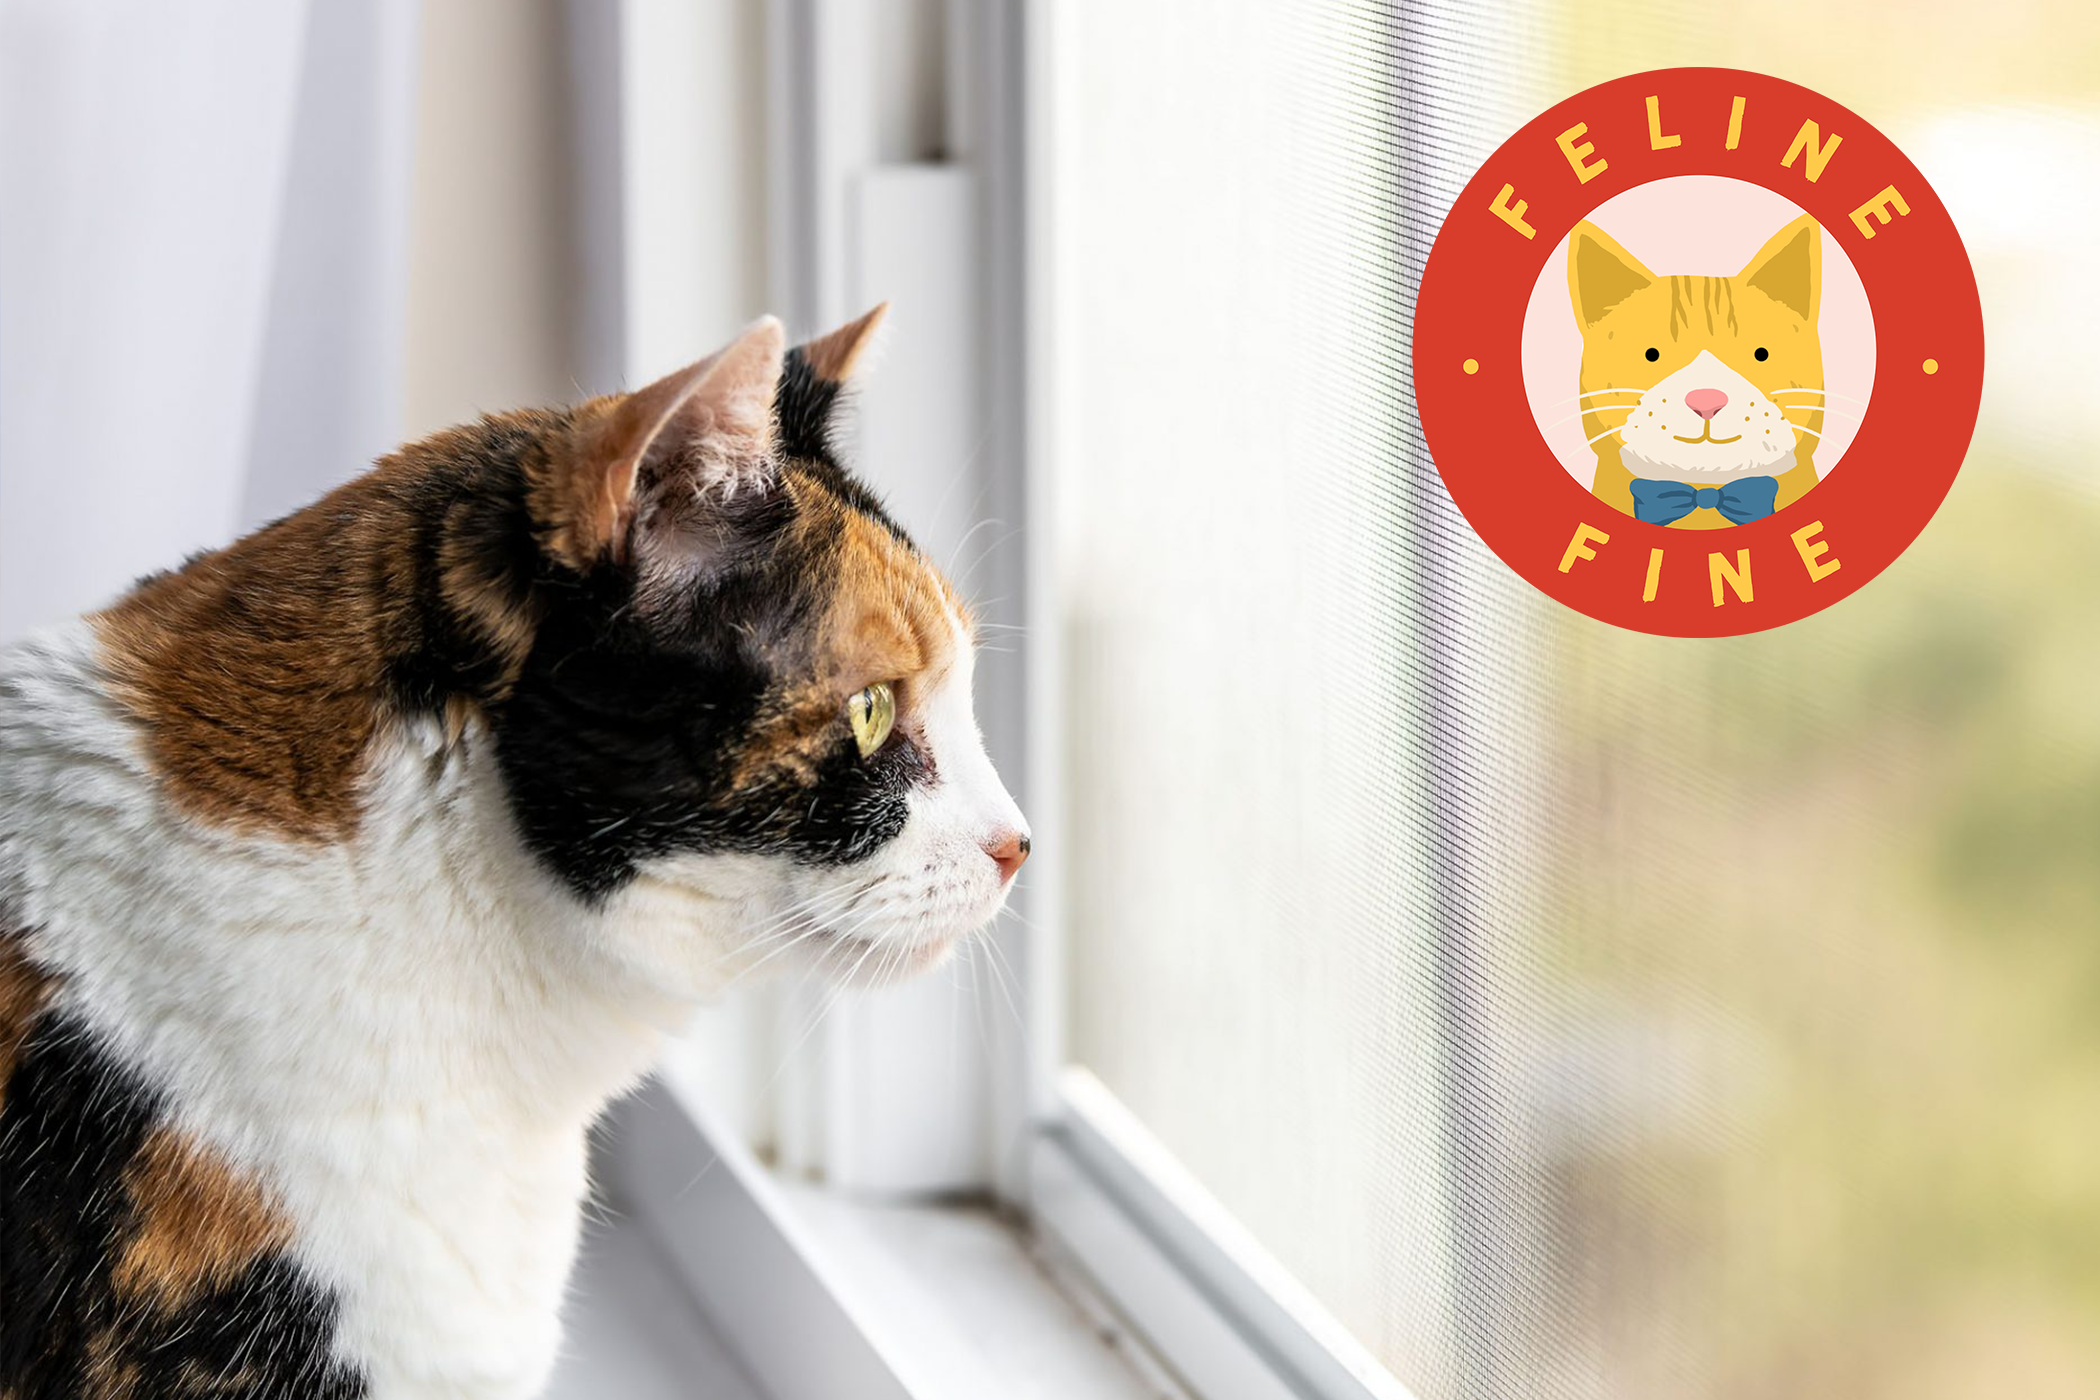 cat looking out the window with Feline Fine logo